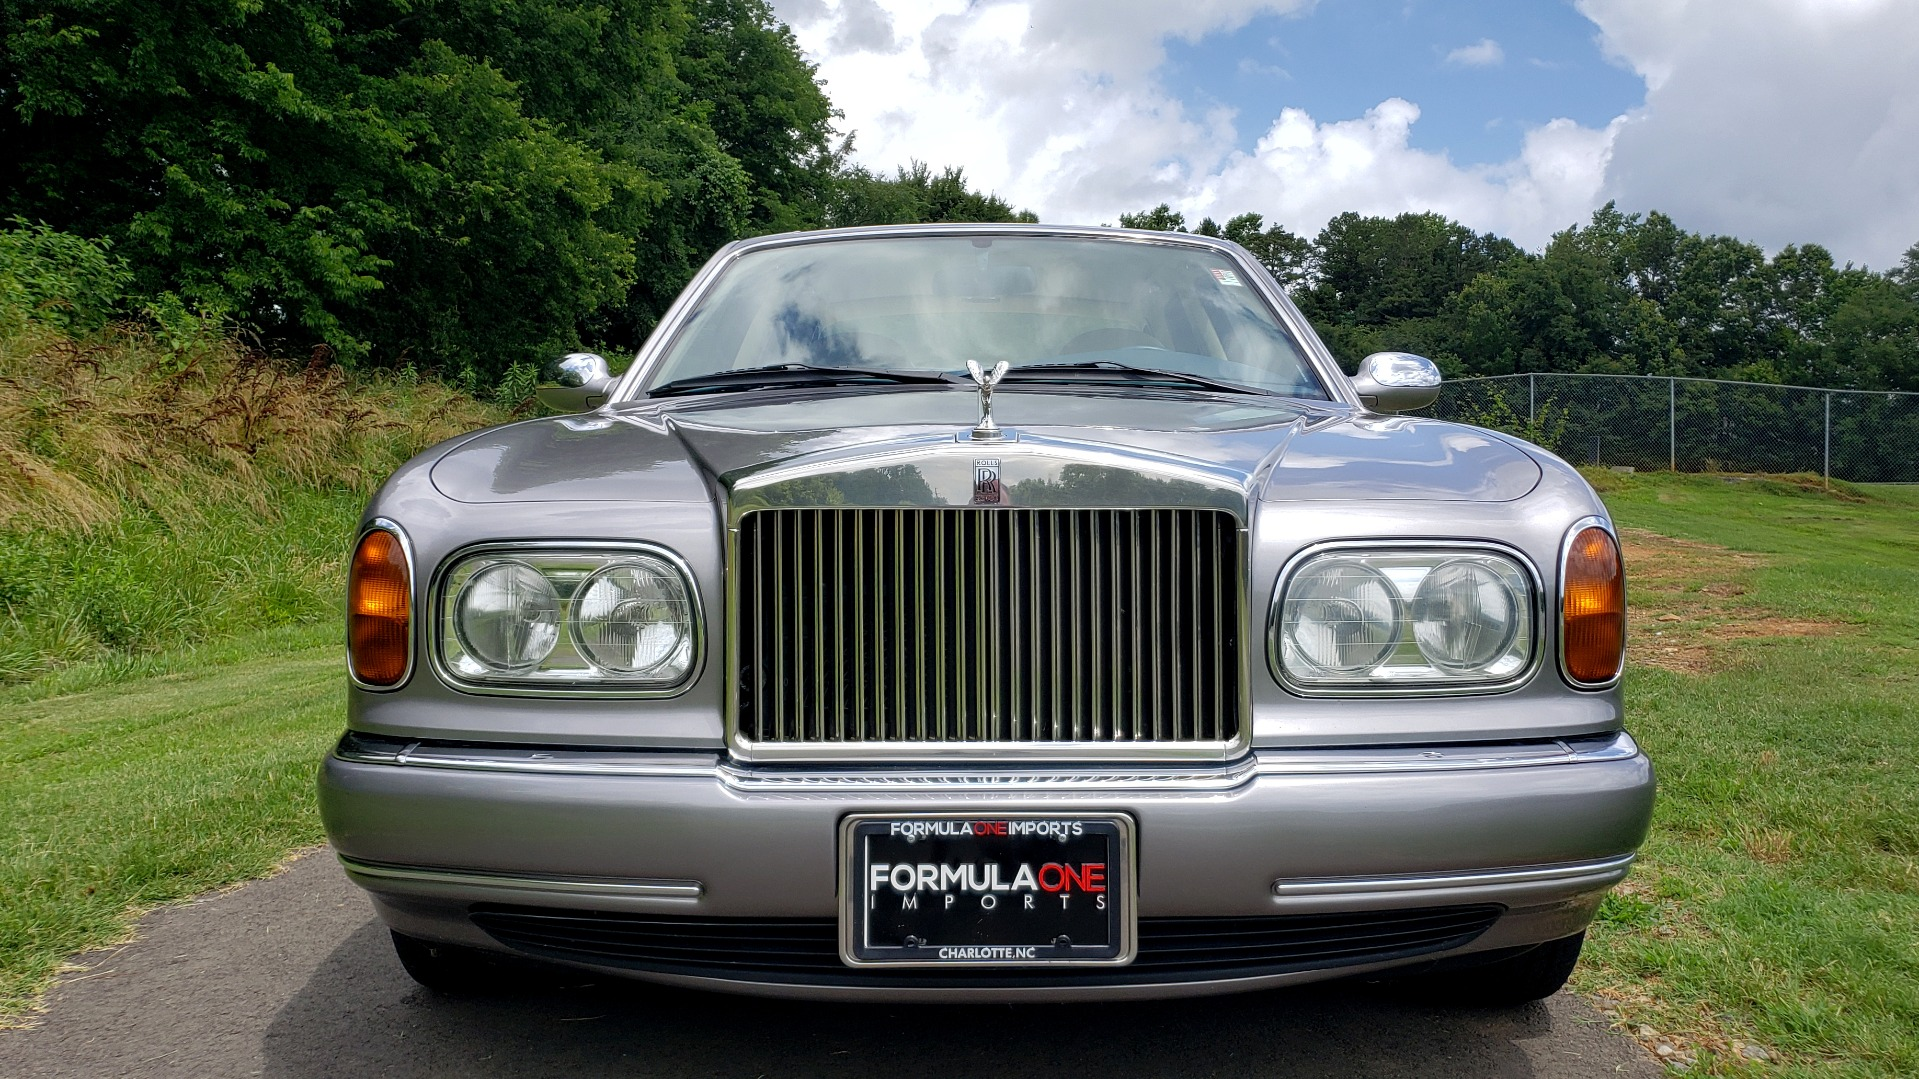 Used 1999 Rolls-Royce SILVER SERAPH 5.4L V12 / AUTO TRANS / LOW MILES / VERY CLEAN! for sale Sold at Formula Imports in Charlotte NC 28227 10